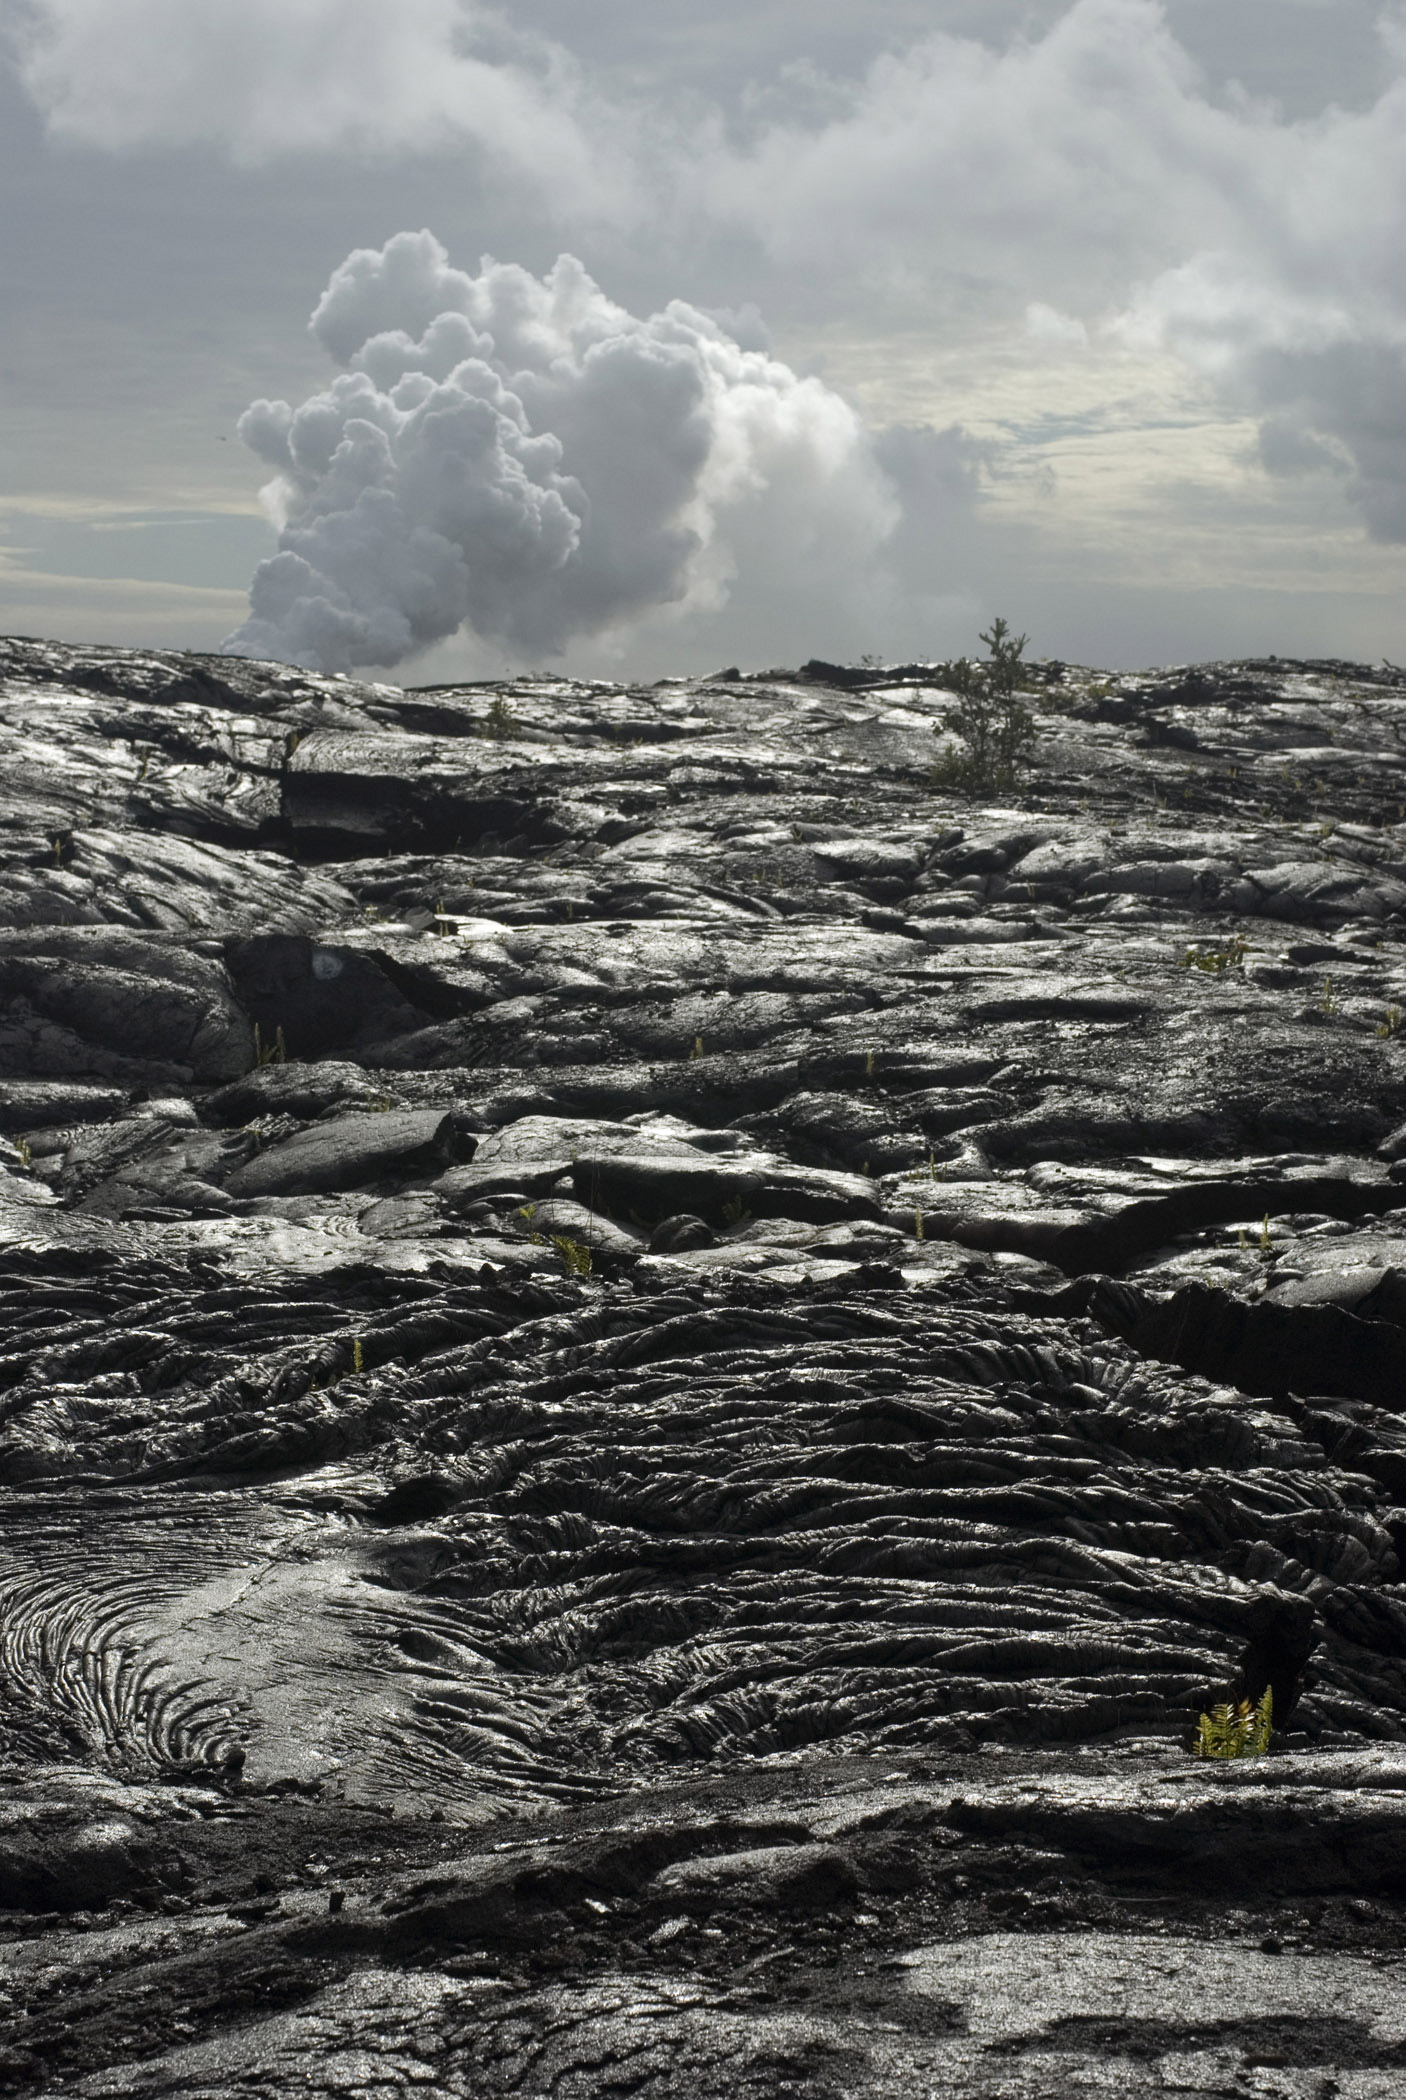 Lava Fields in Volcanoes National Park, Ohau, Hawaii with solidified lava flows of black igneous rock stretching into the distance